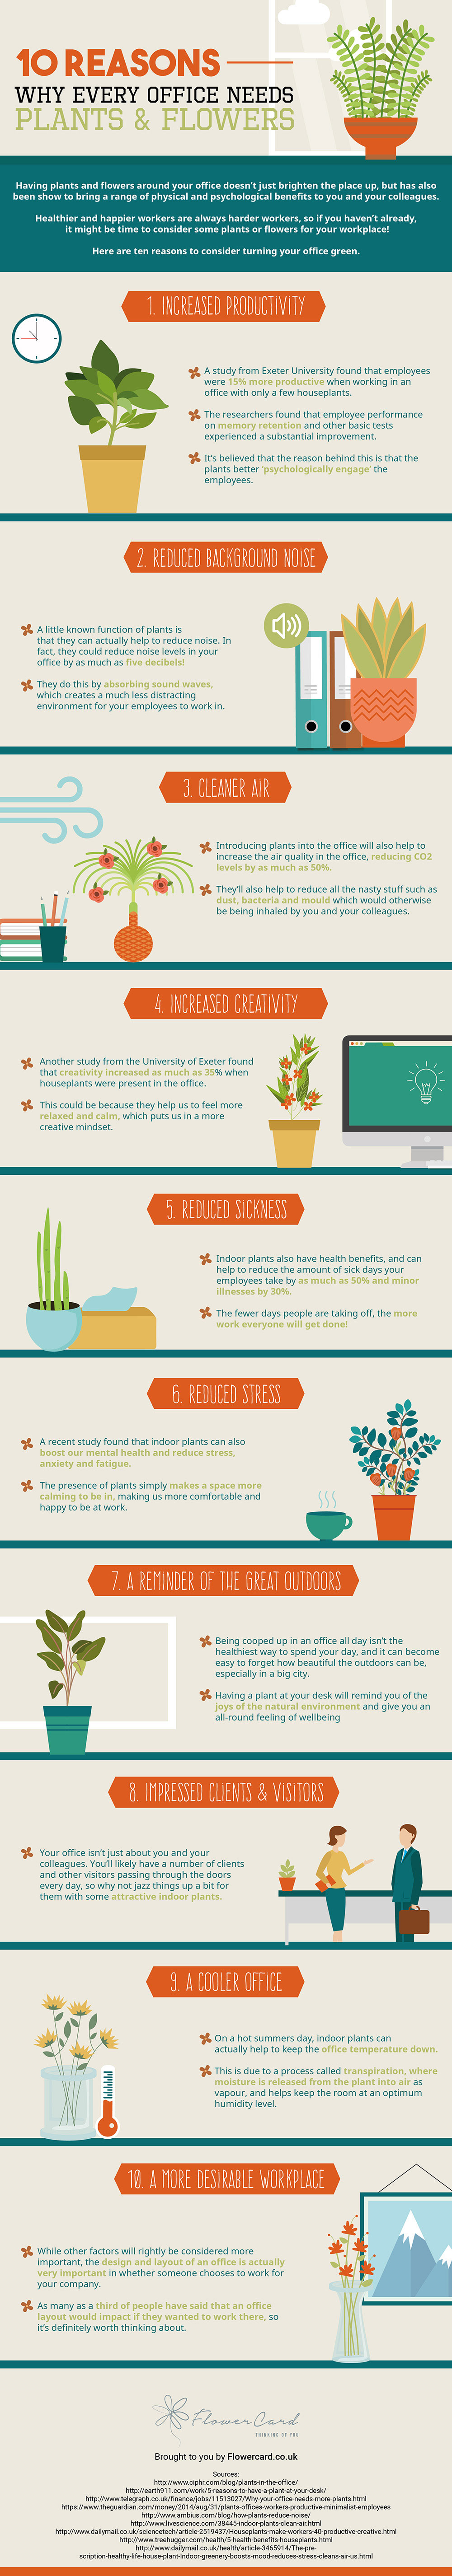 10 Reasons Why Every Office Needs Plants and Flowers